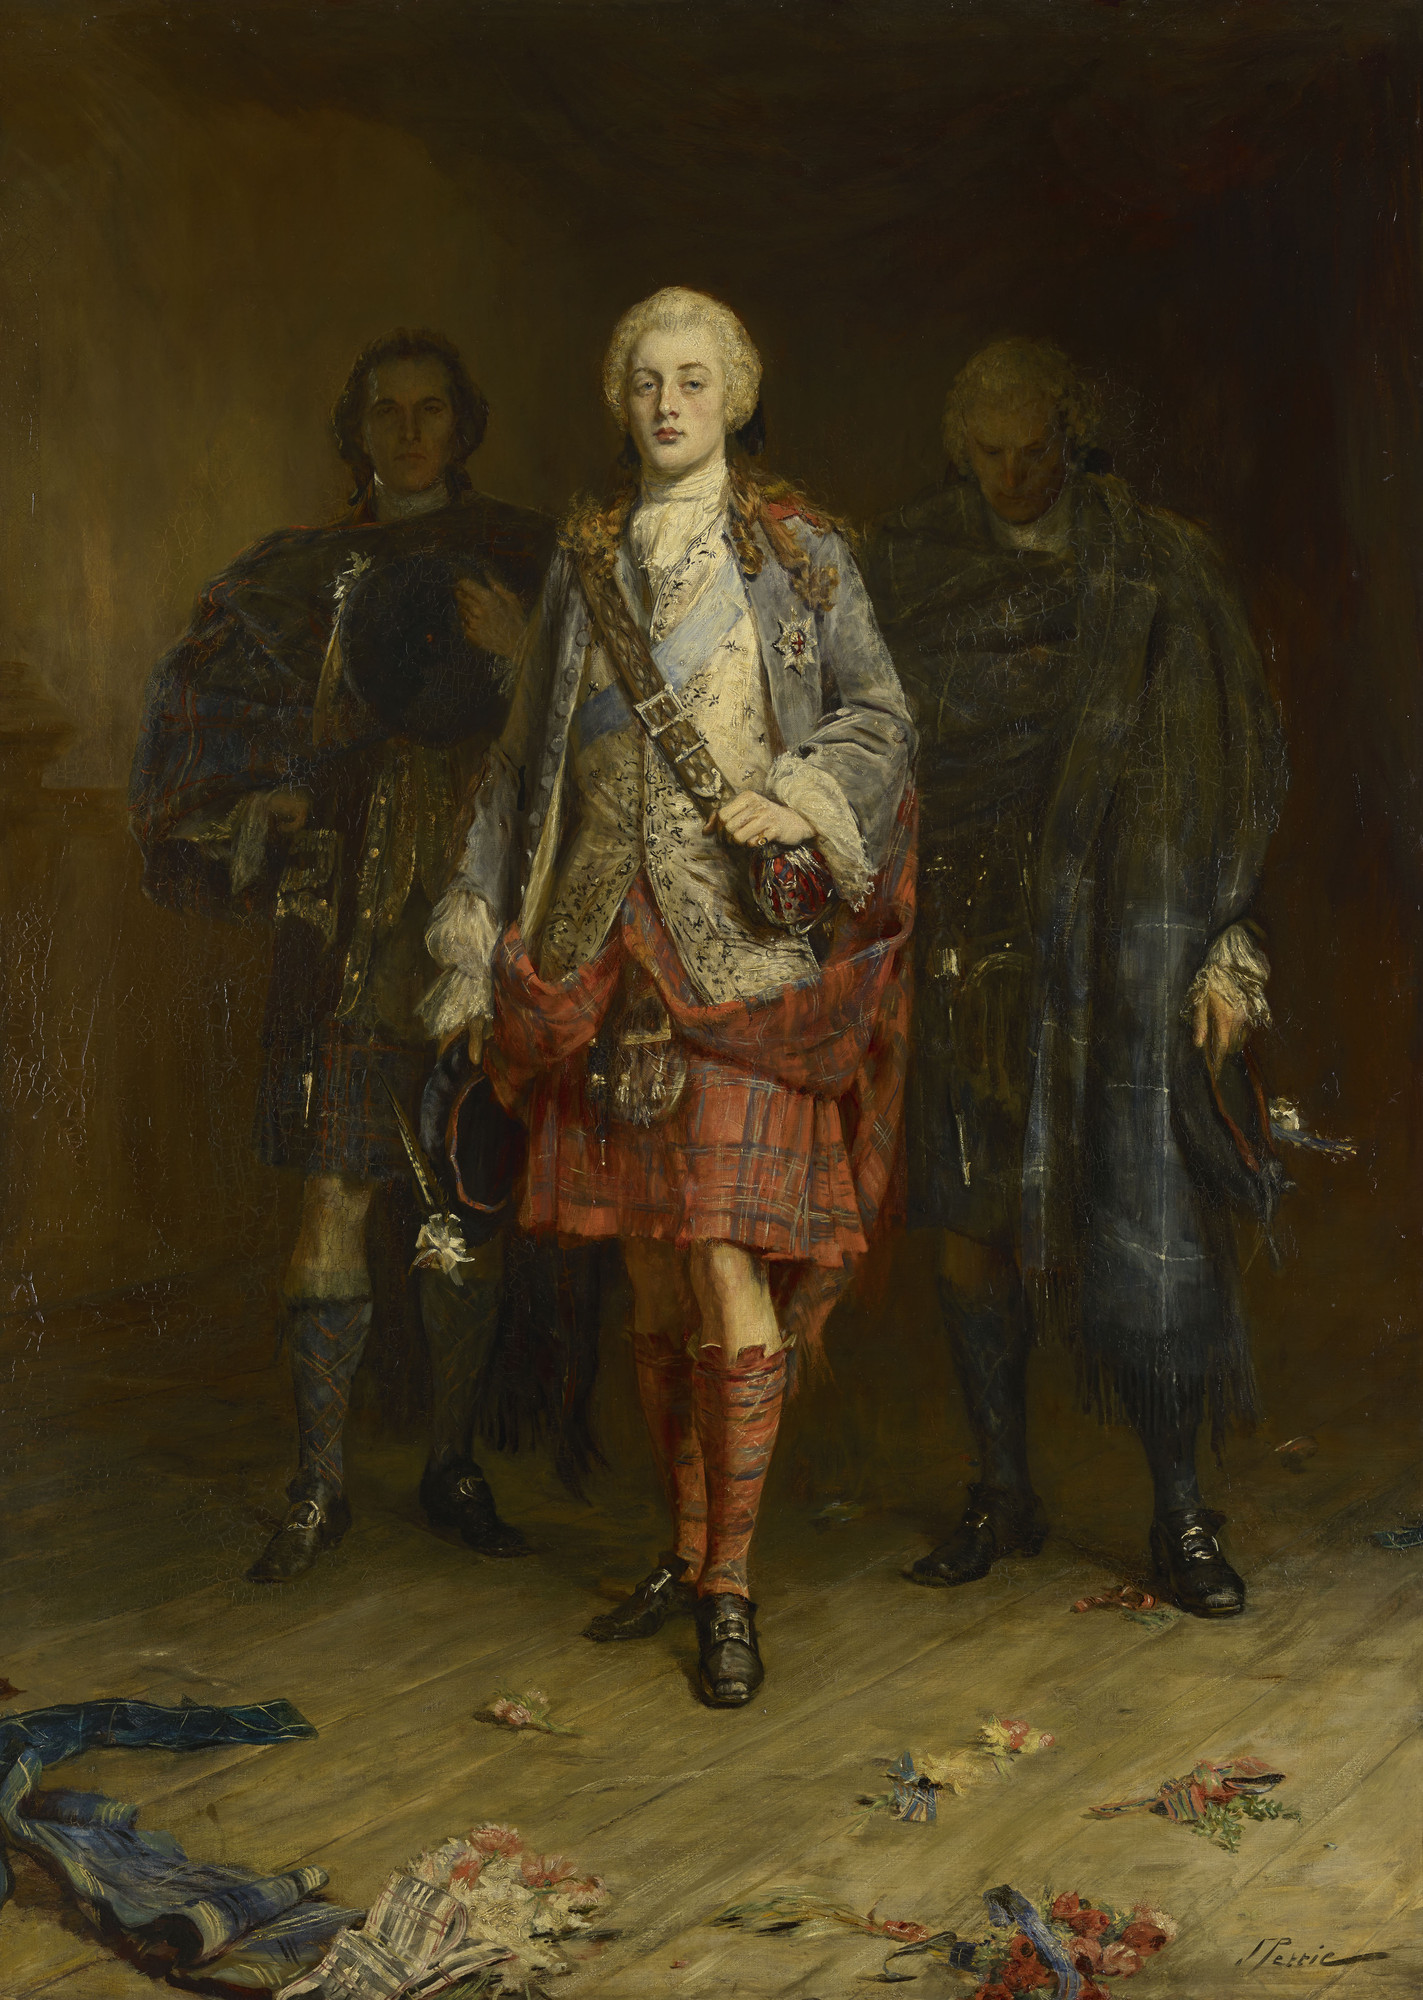 John Pettie (1834-93) - Bonnie Prince Charlie Entering the Ballroom at Holyroodhouse